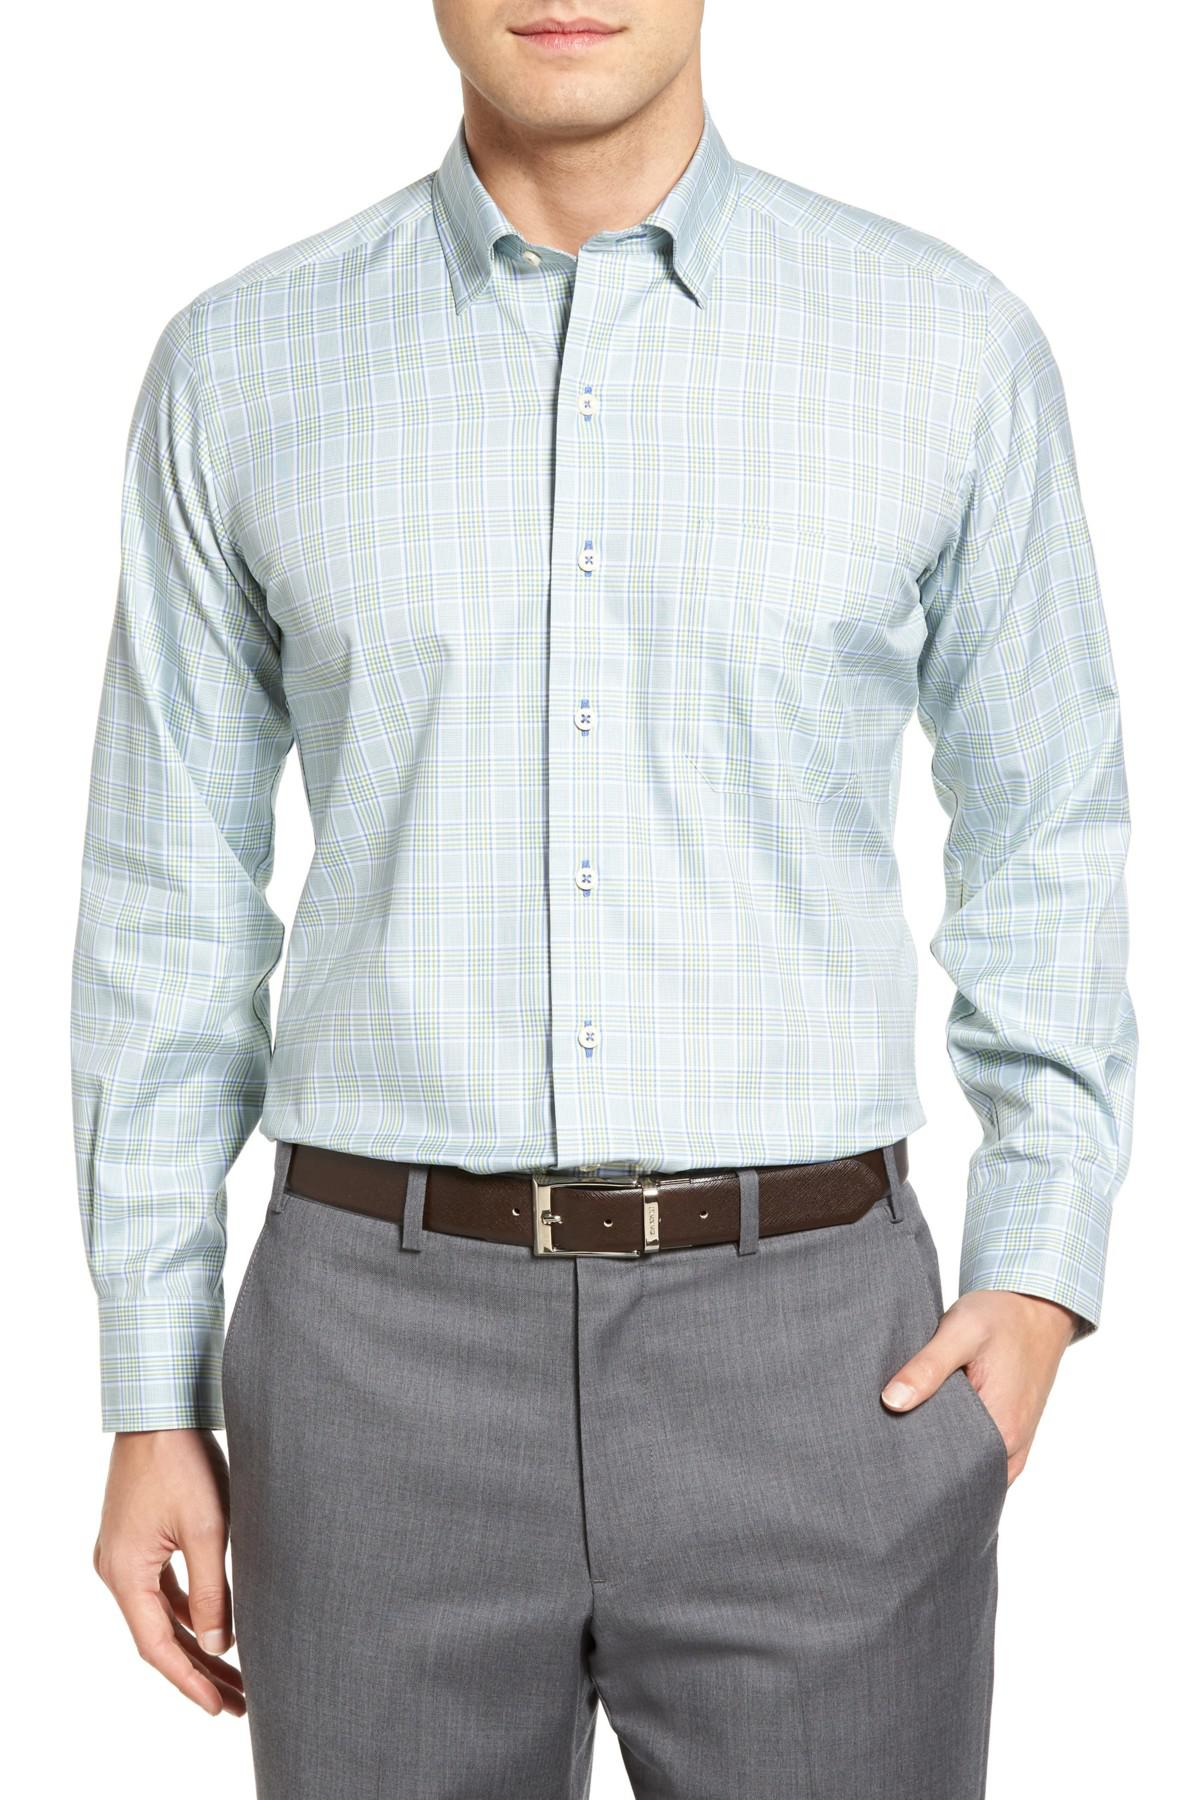 David donahue sport shirt in blue for men lyst for David donahue french cuff shirts